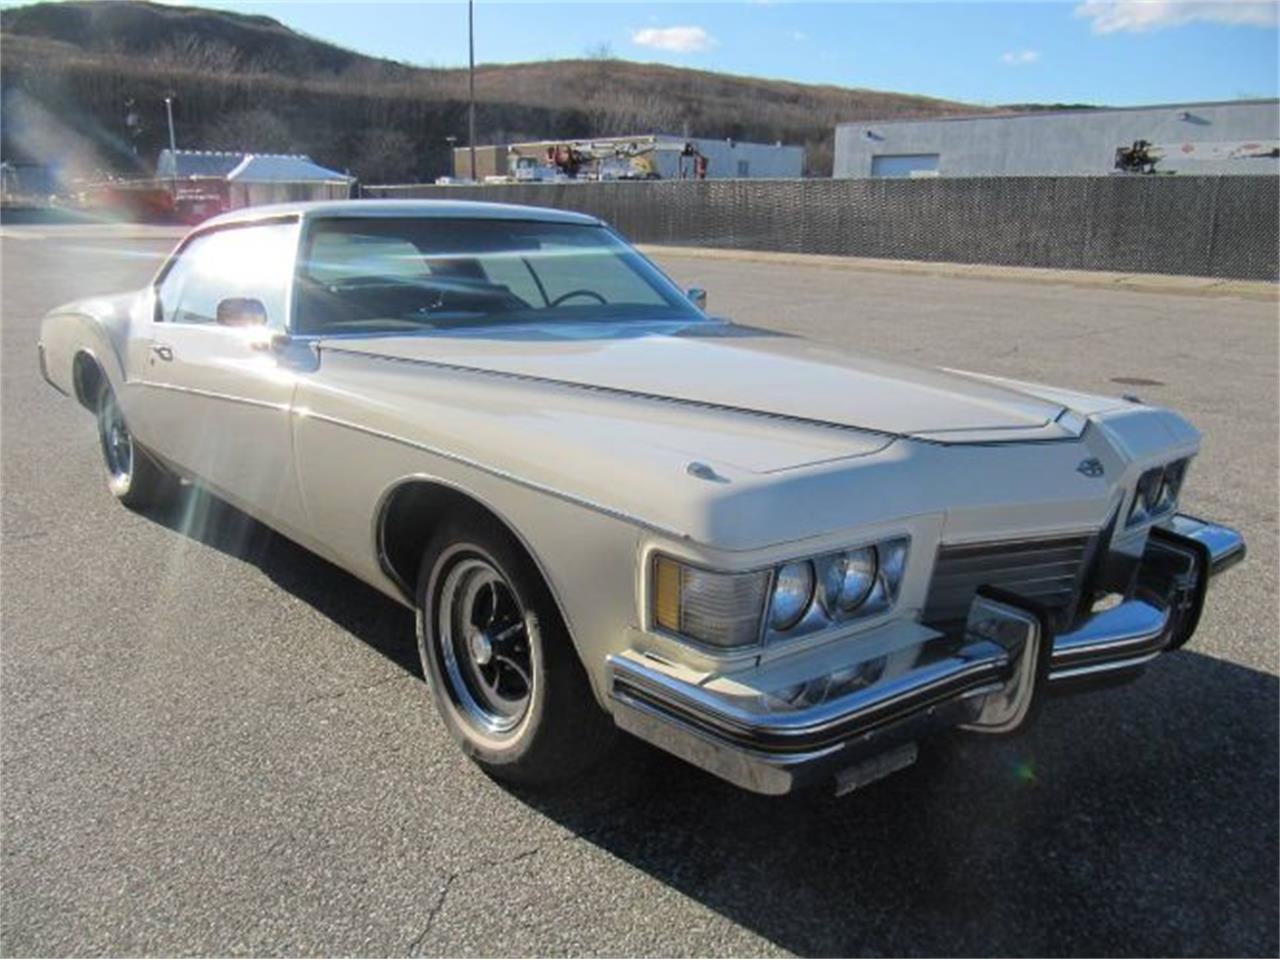 Large Picture of '73 Buick Riviera located in Michigan - $14,995.00 - Q97S